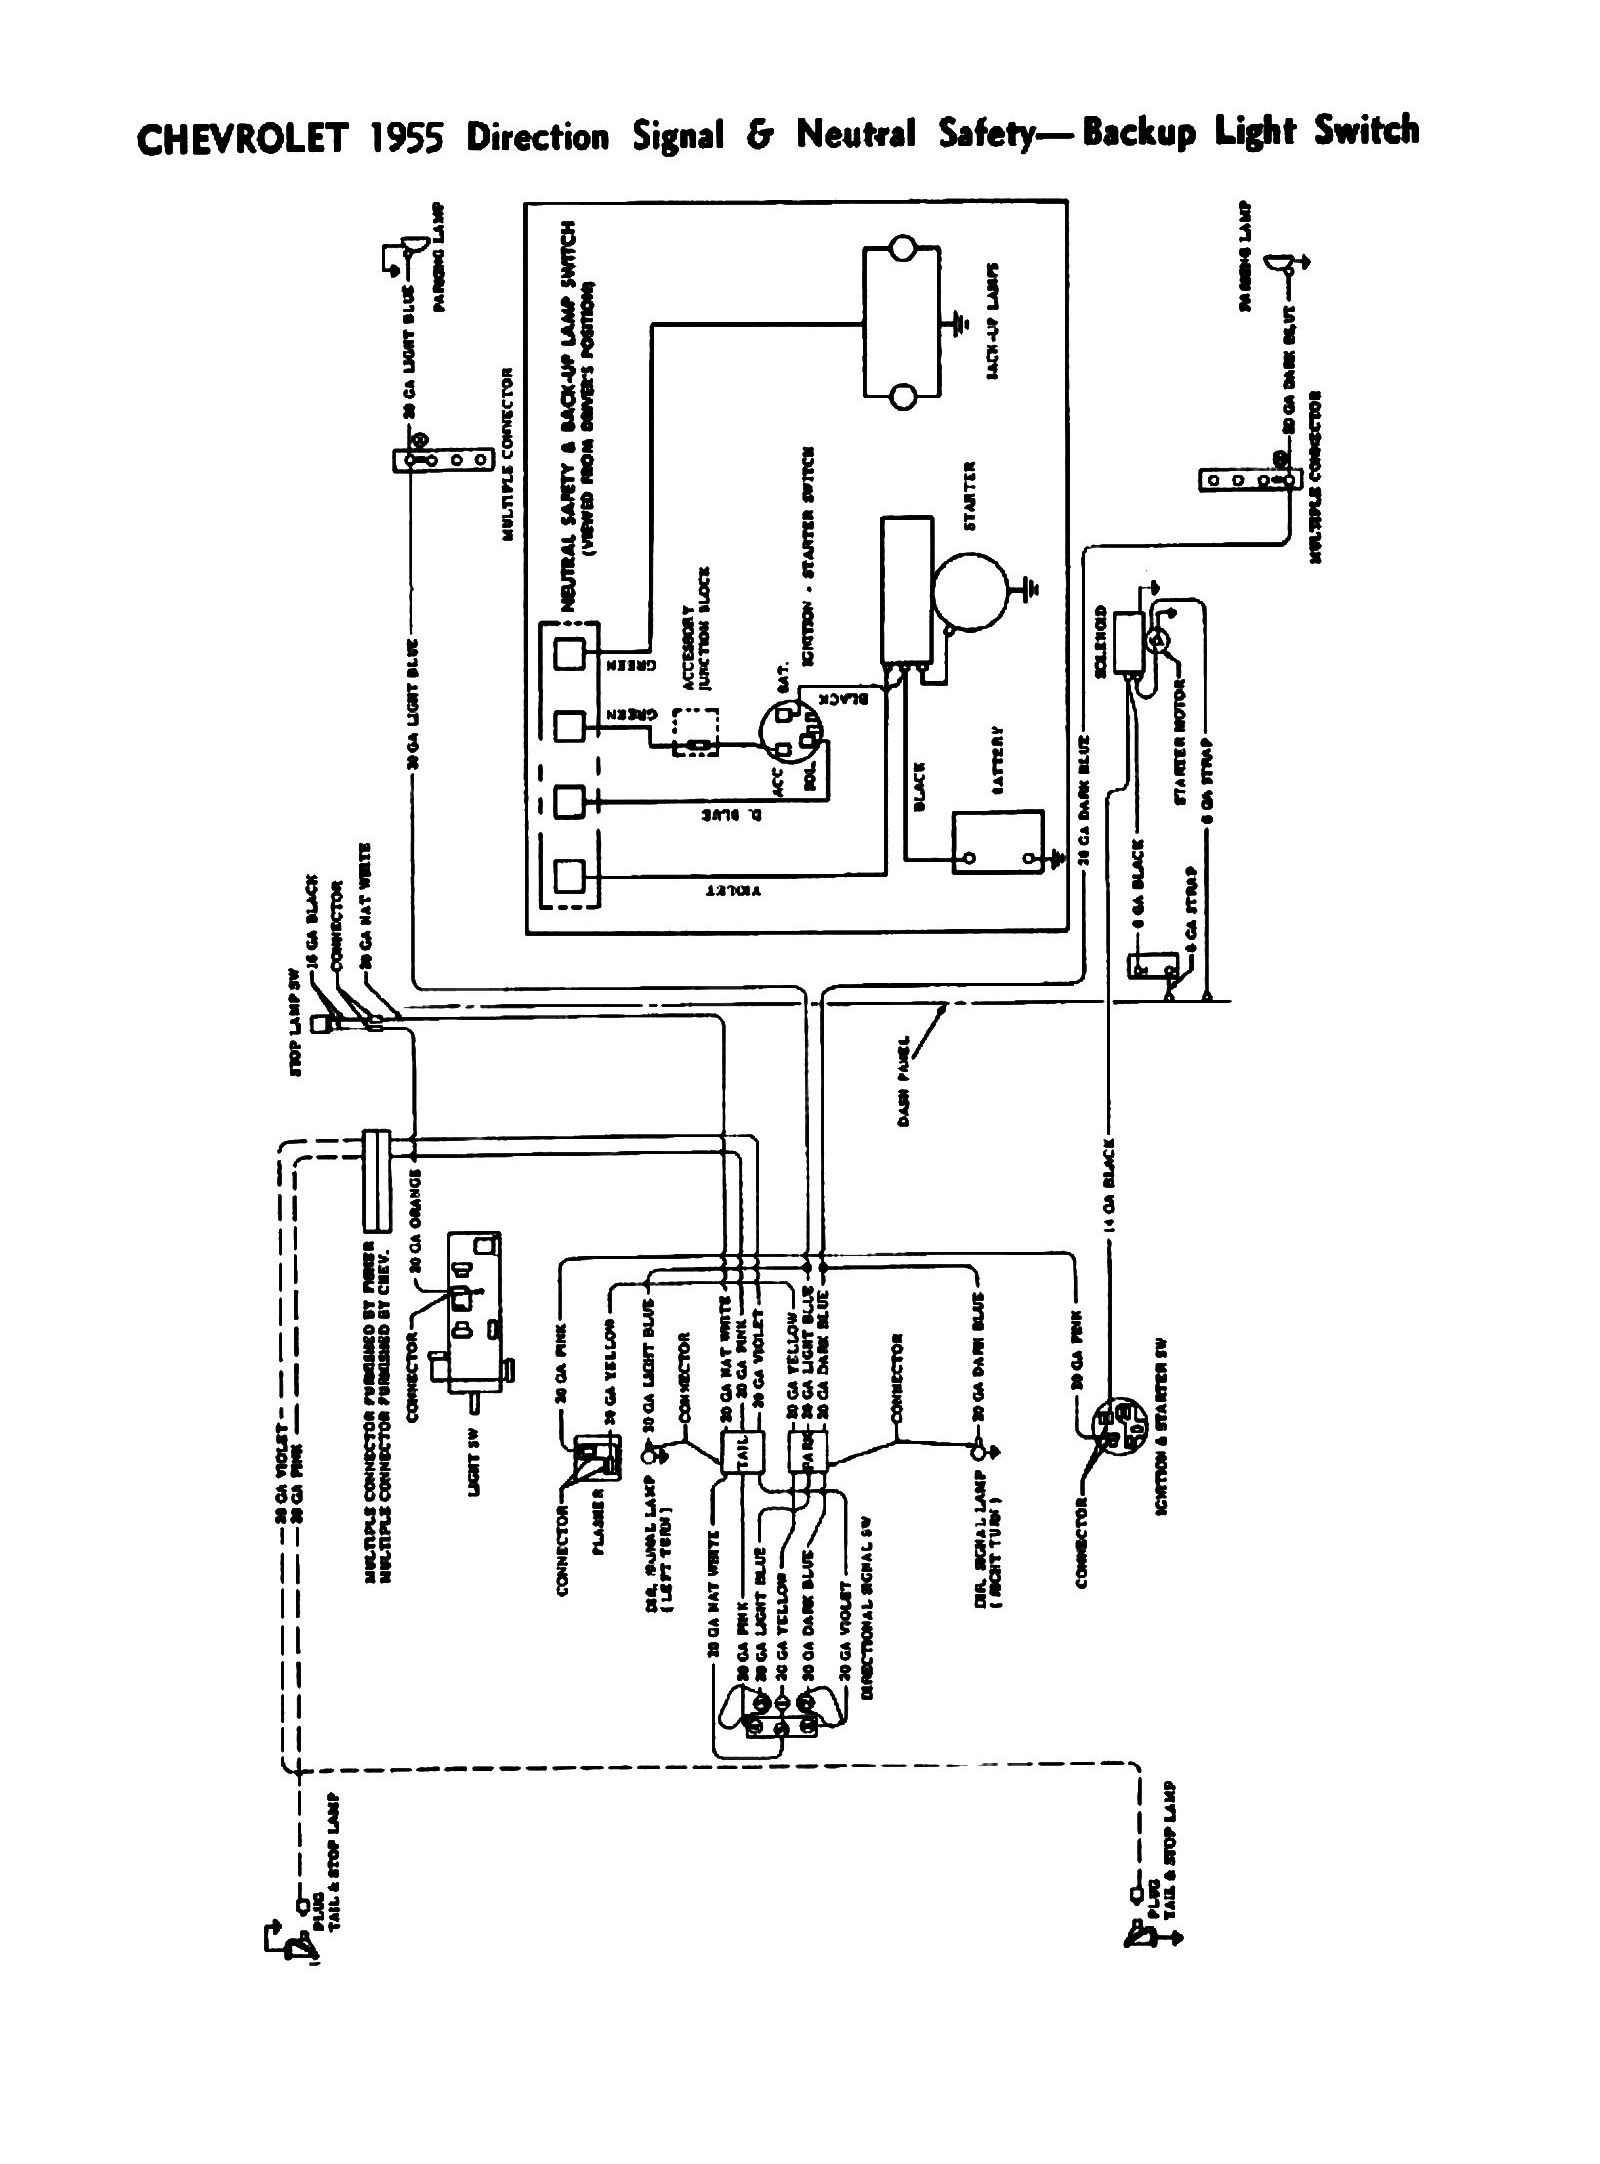 hight resolution of 1957 chevy wagon wiring harness wiring diagram operations 1957 chevy bel air wiring harness diagram wiring